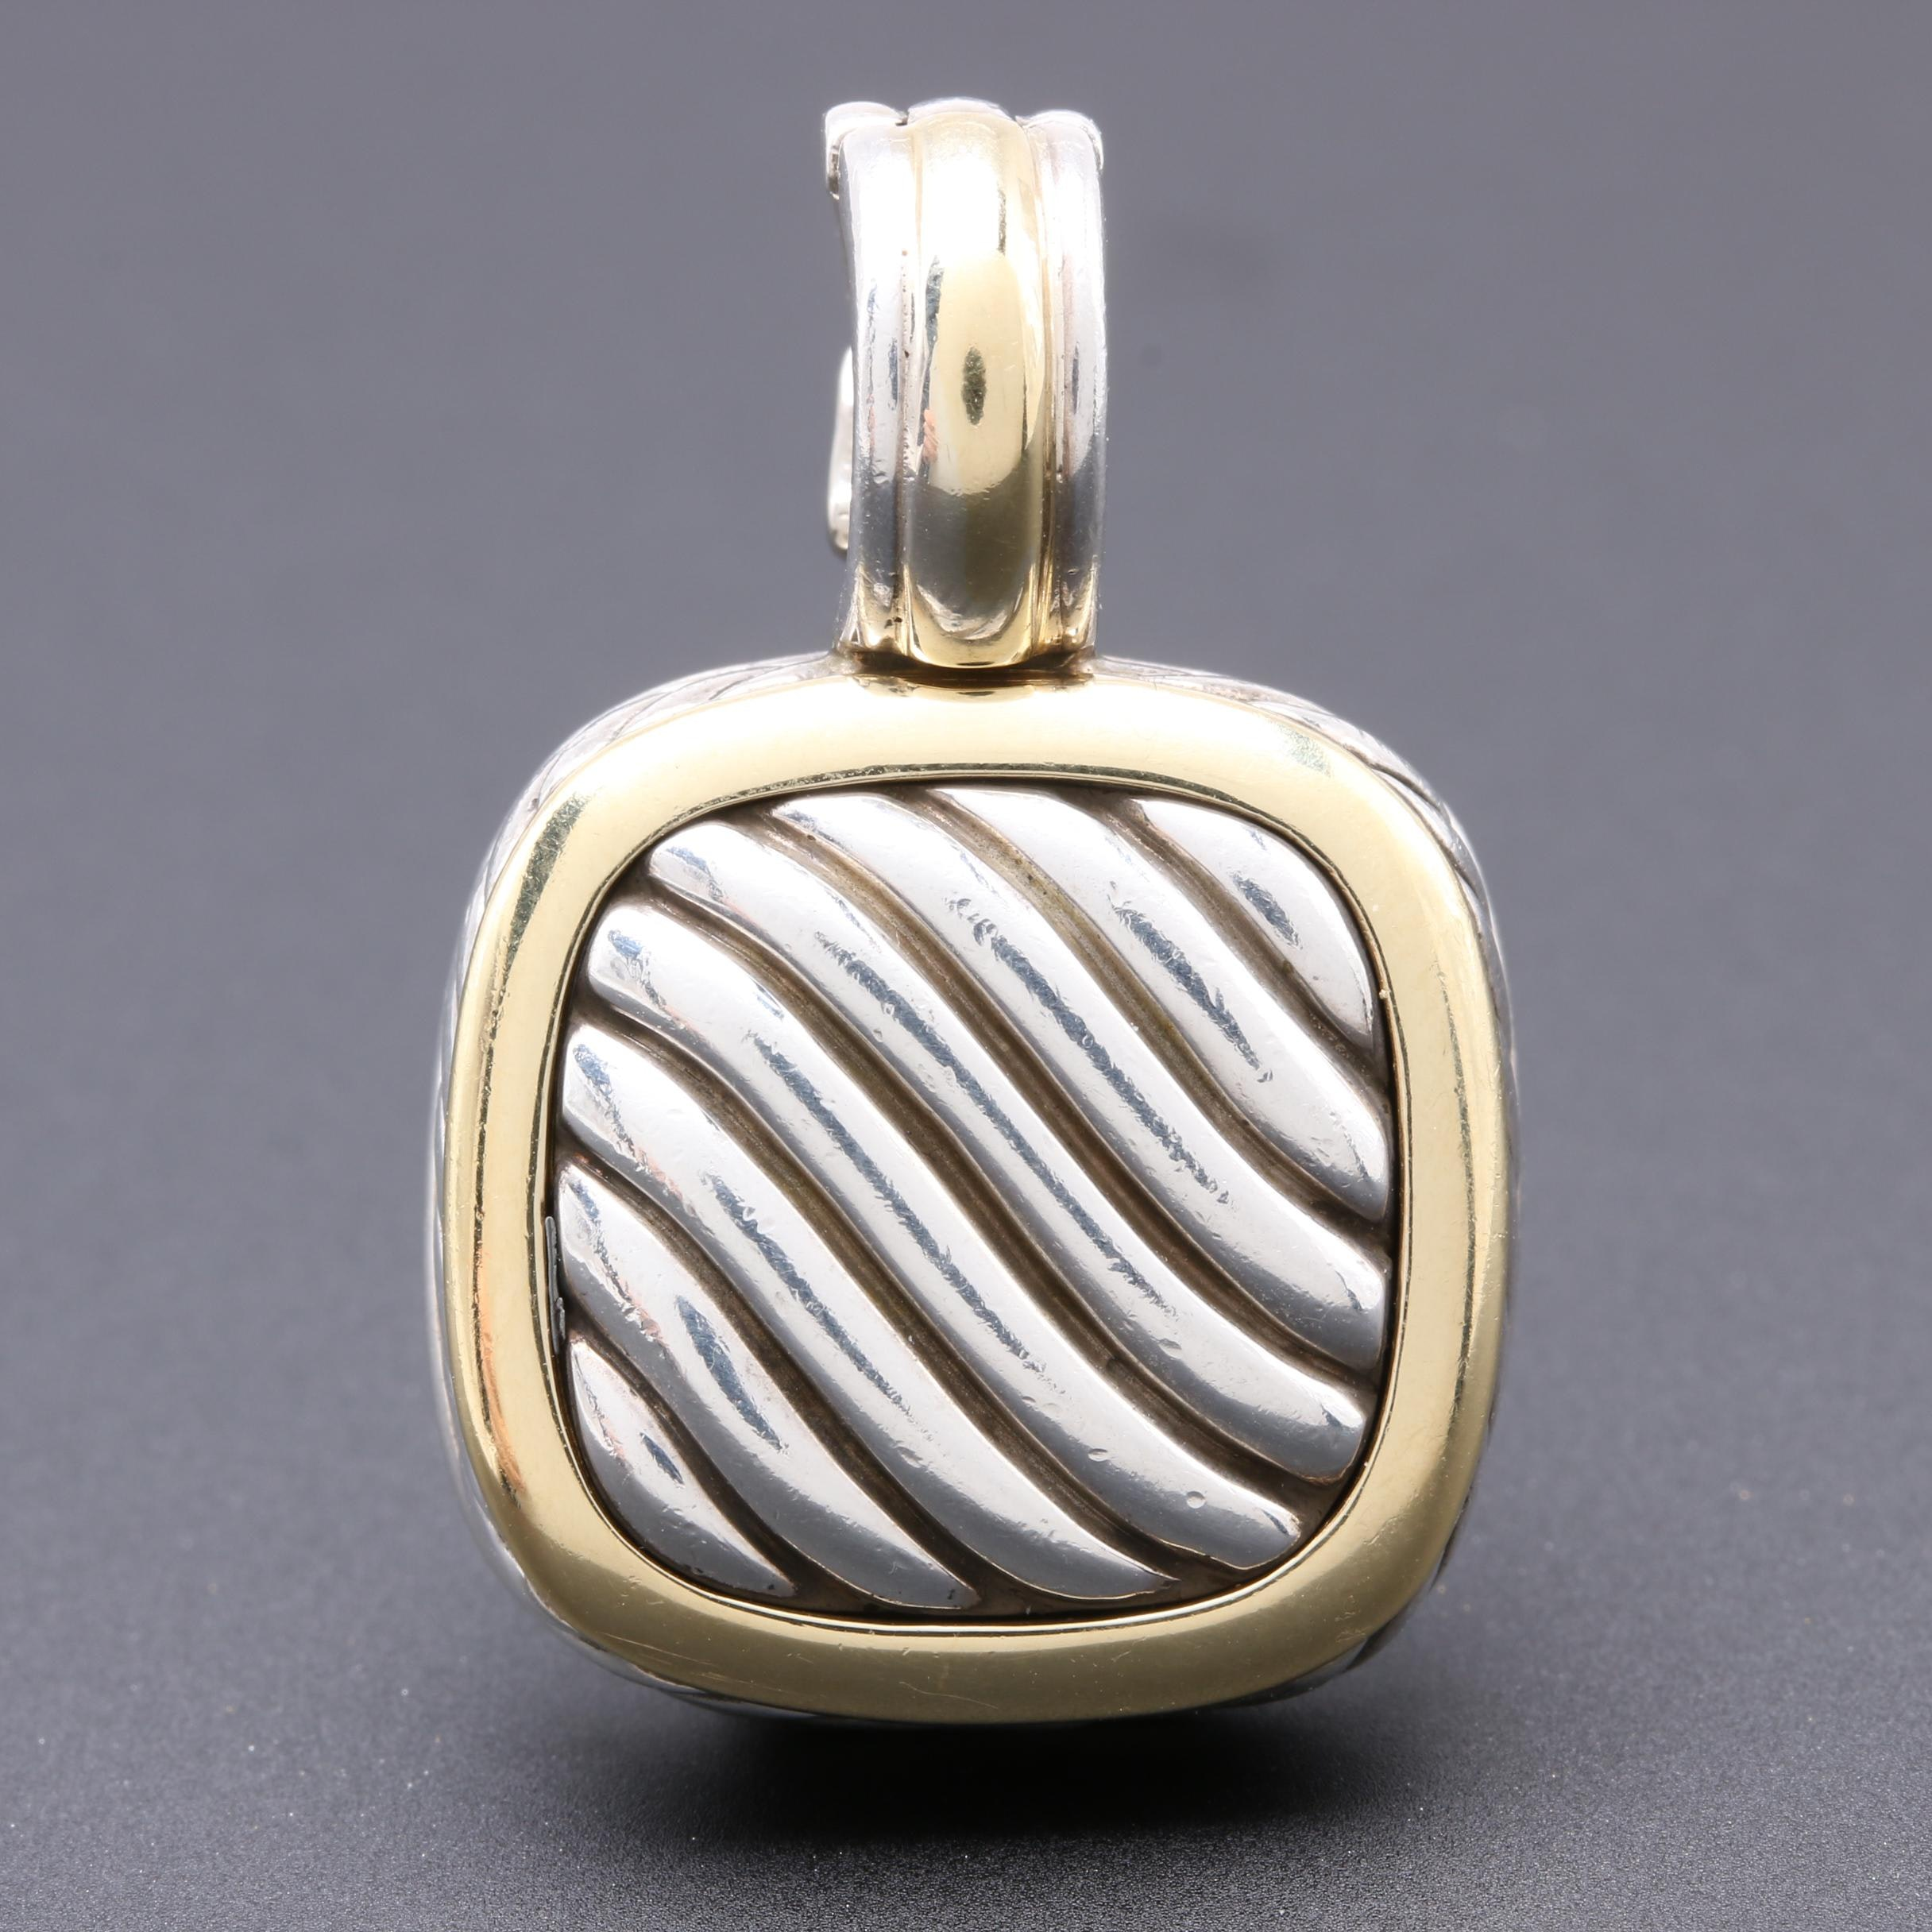 David Yurman Sterling Silver and 18K Yellow Gold Accent Enhancer Pendant